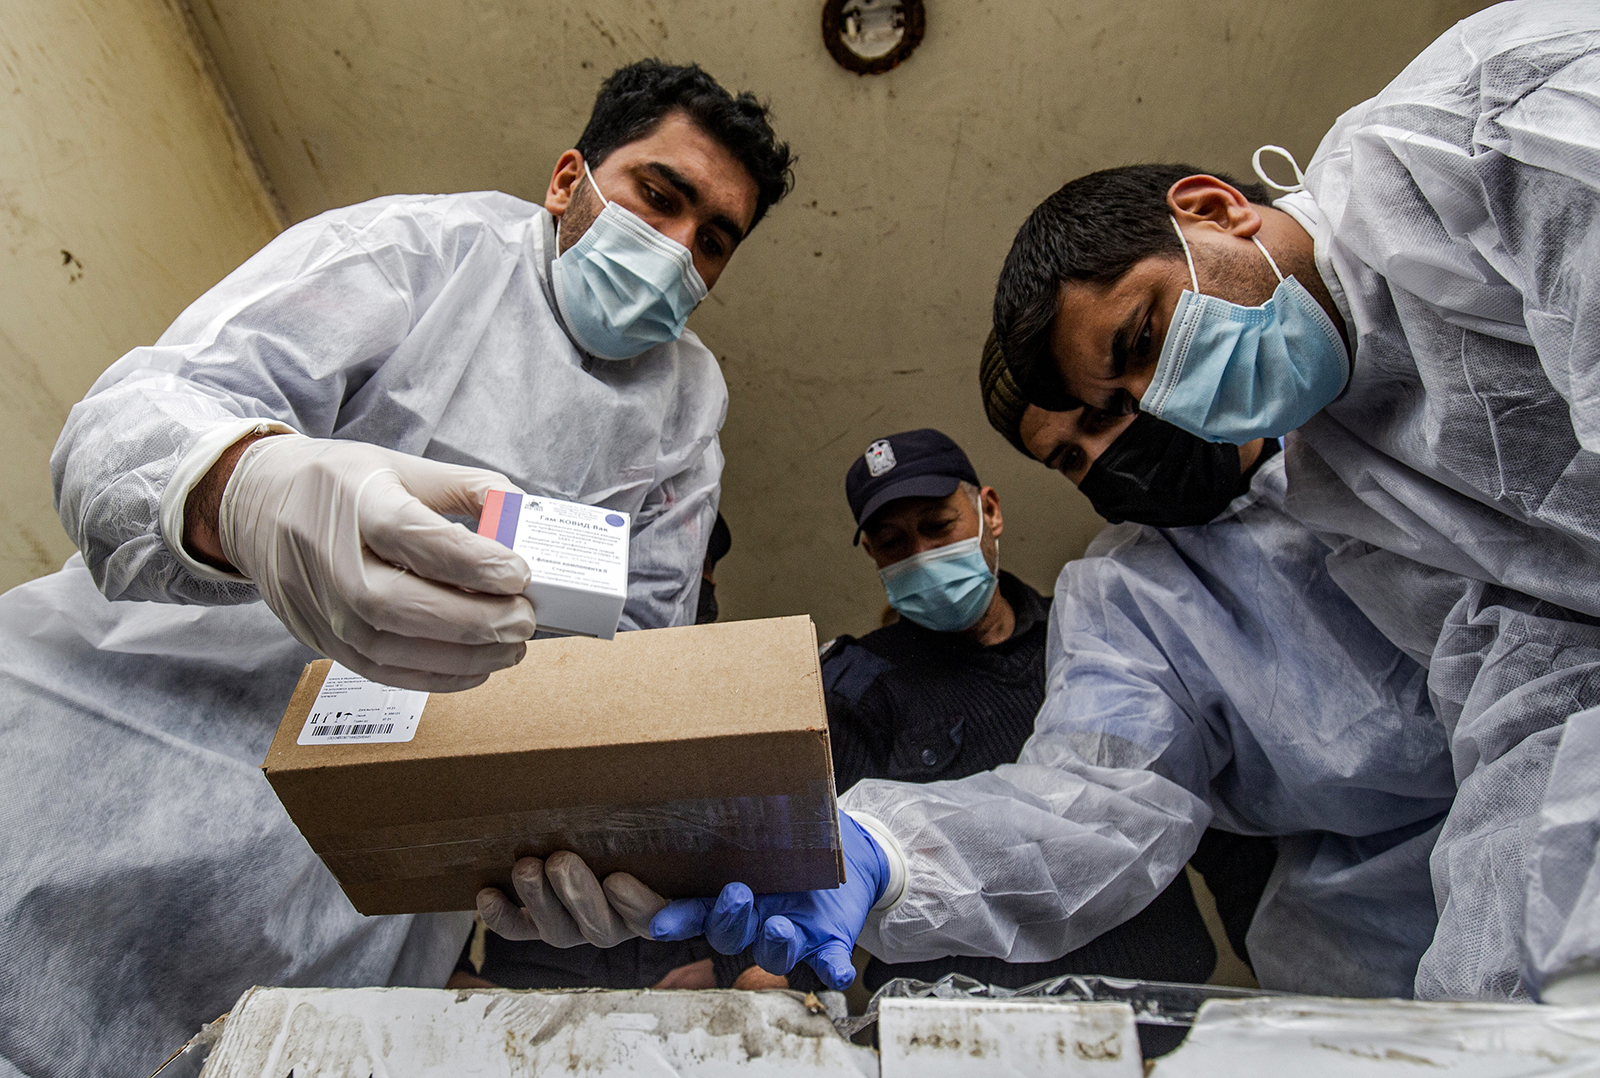 Health workers unload the first shipment of Russia's Sputnik V Covid-19 vaccine in Gaza on February 17.